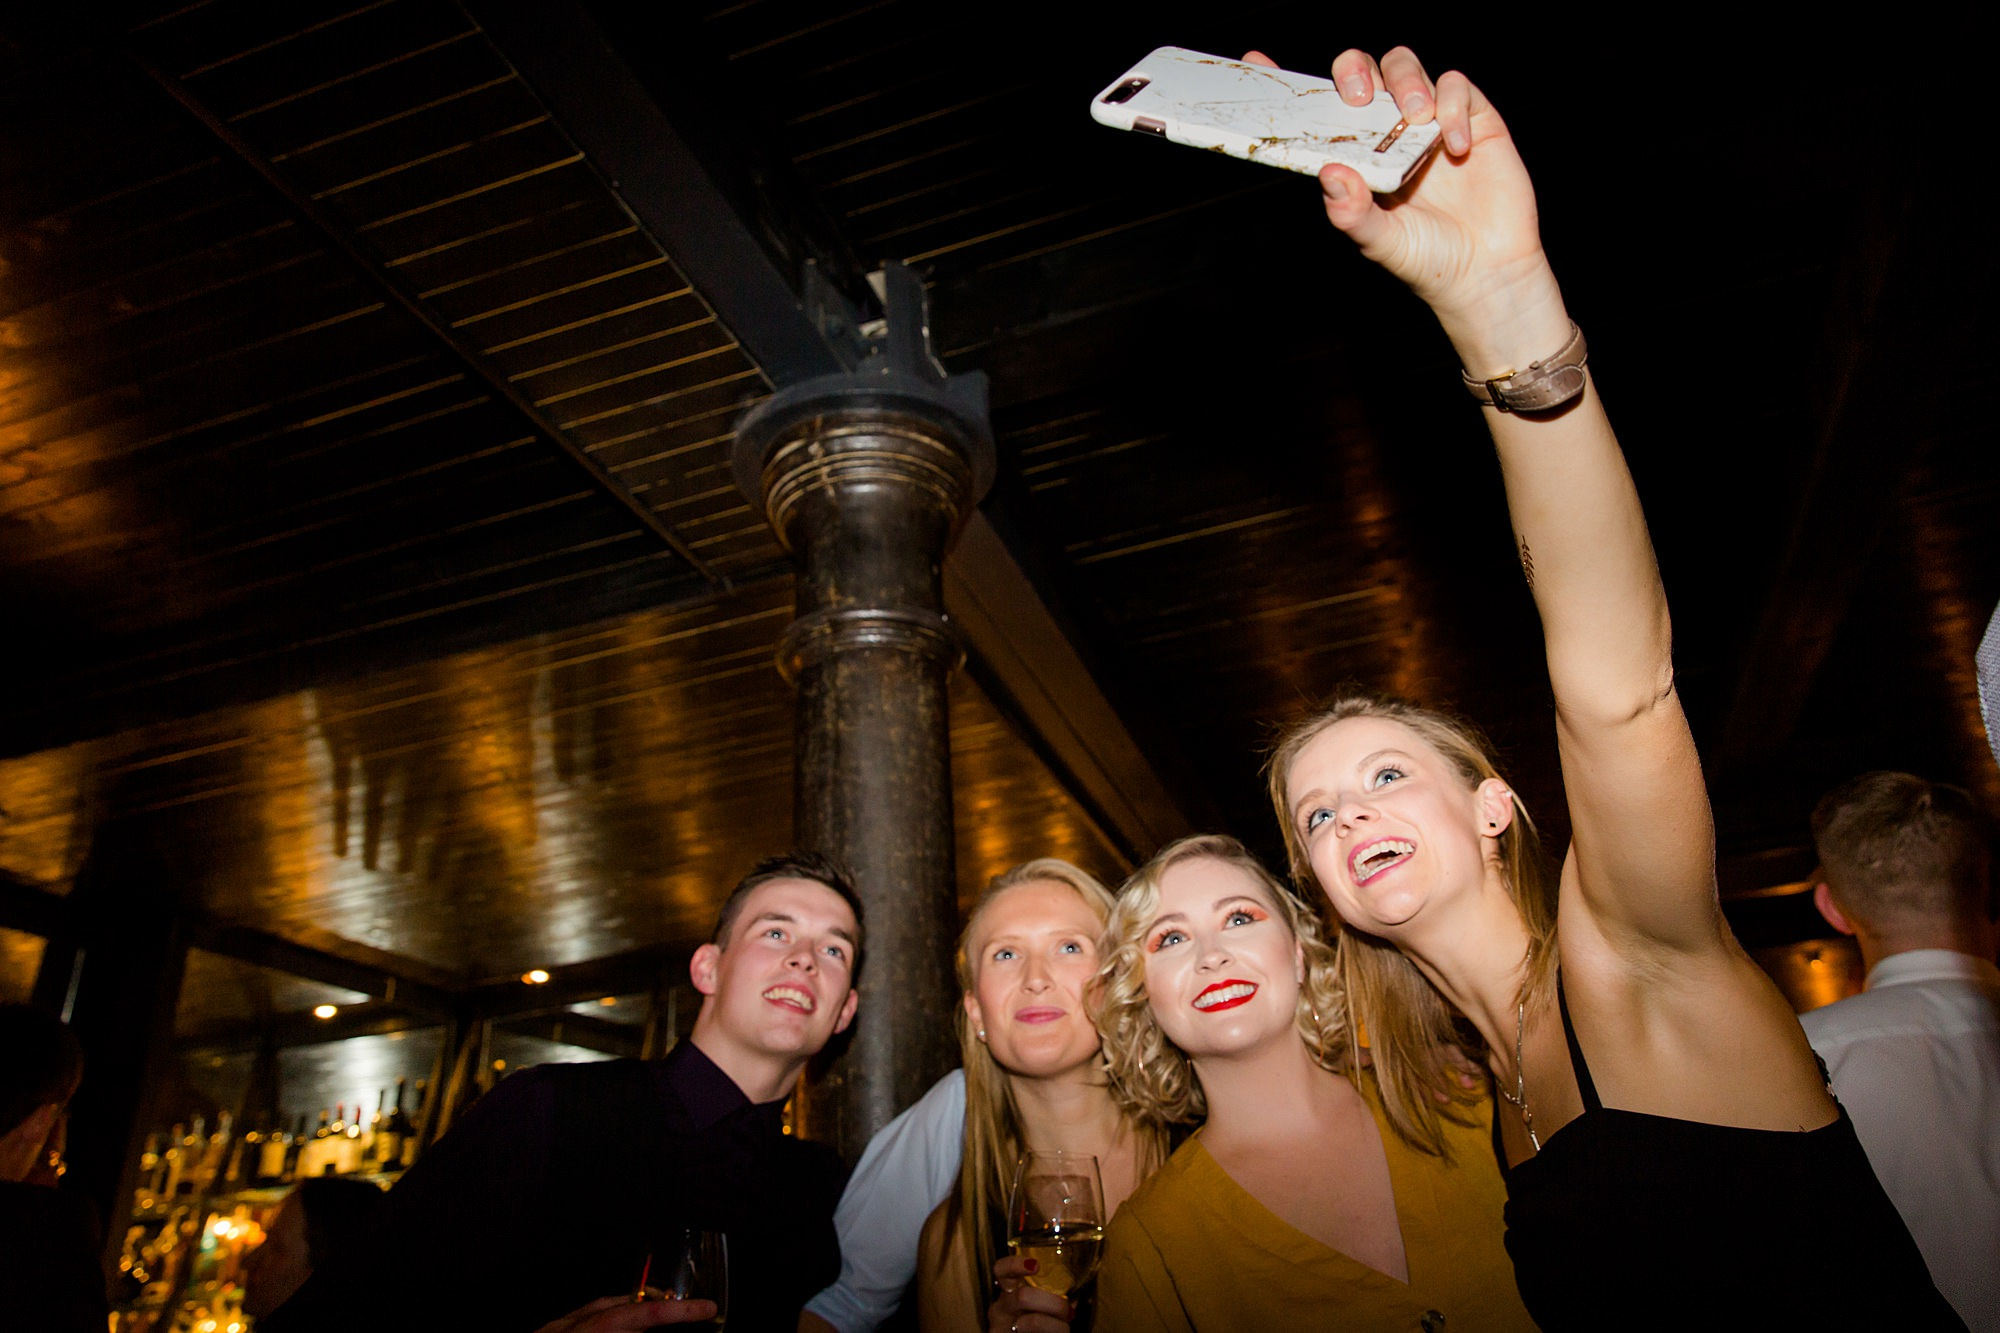 Harrild and sons wedding guests take selfie on dance floor